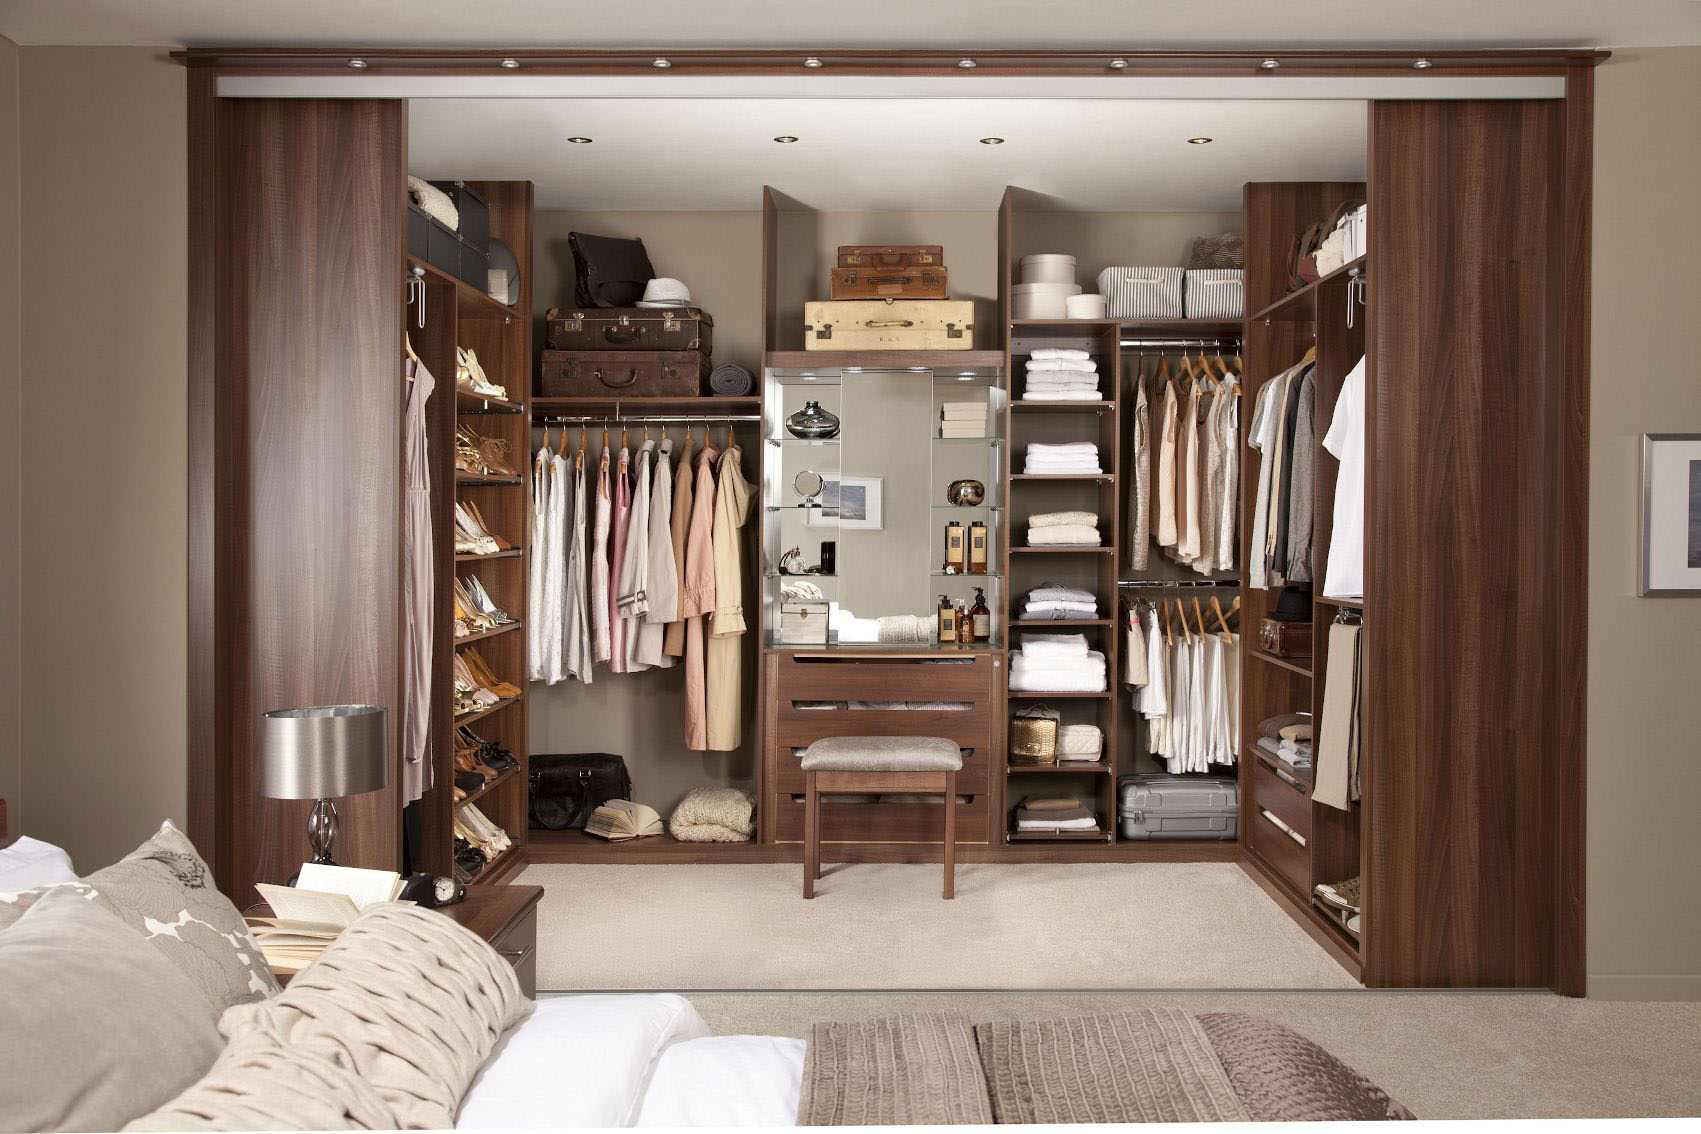 Walk-in Closet for Men - Masculine closet design (22)